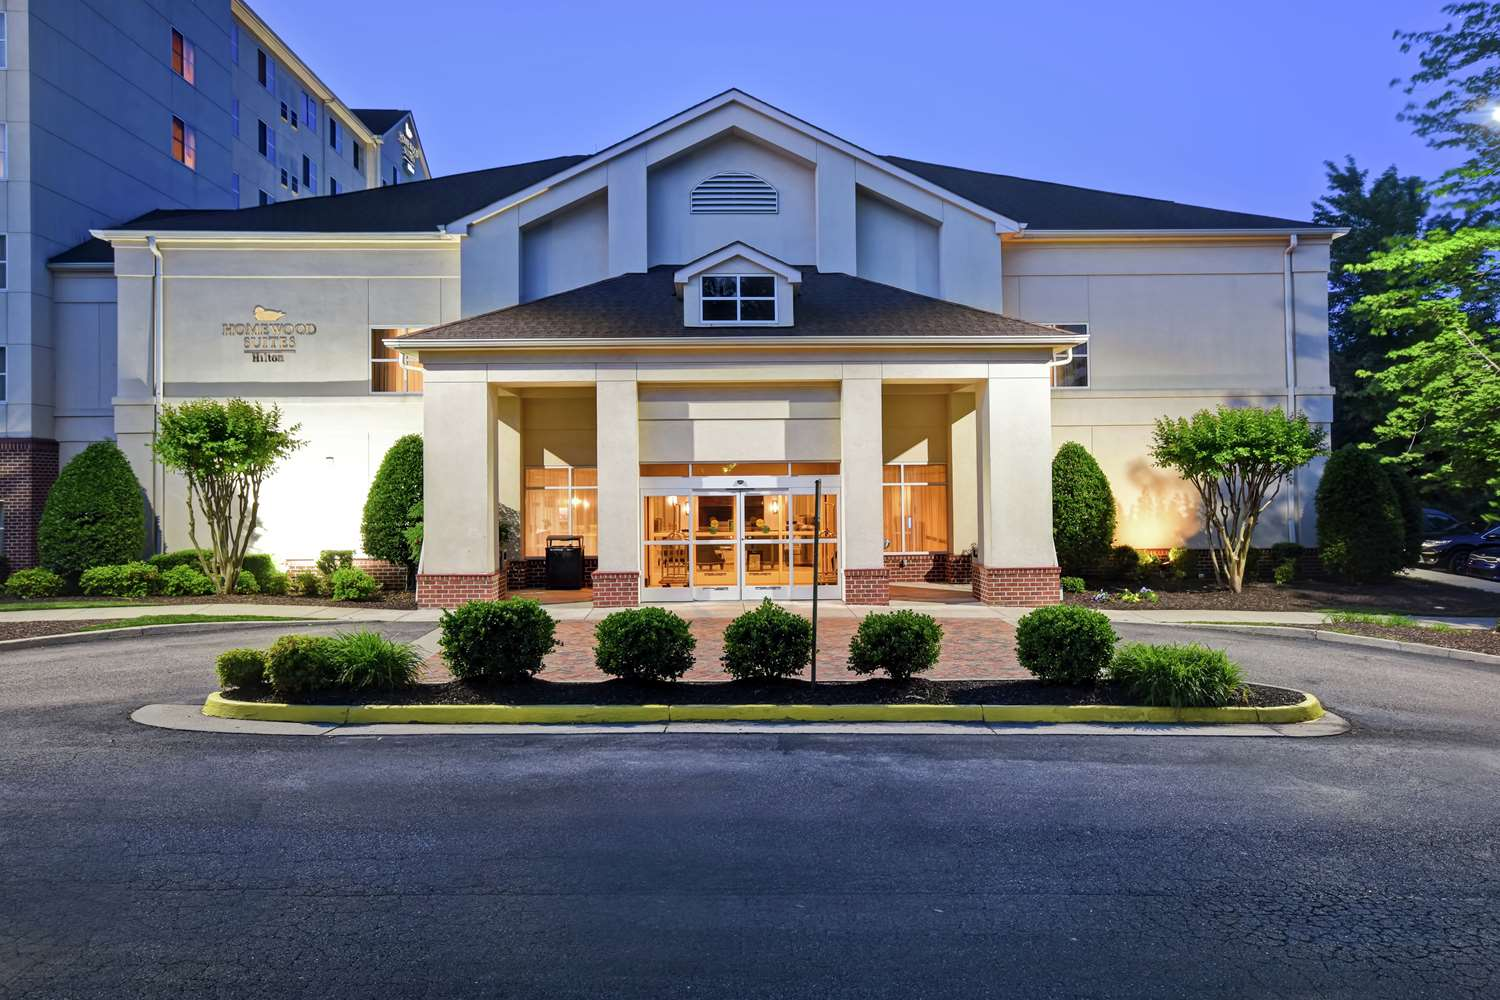 Homewood Suites by Hilton Chester